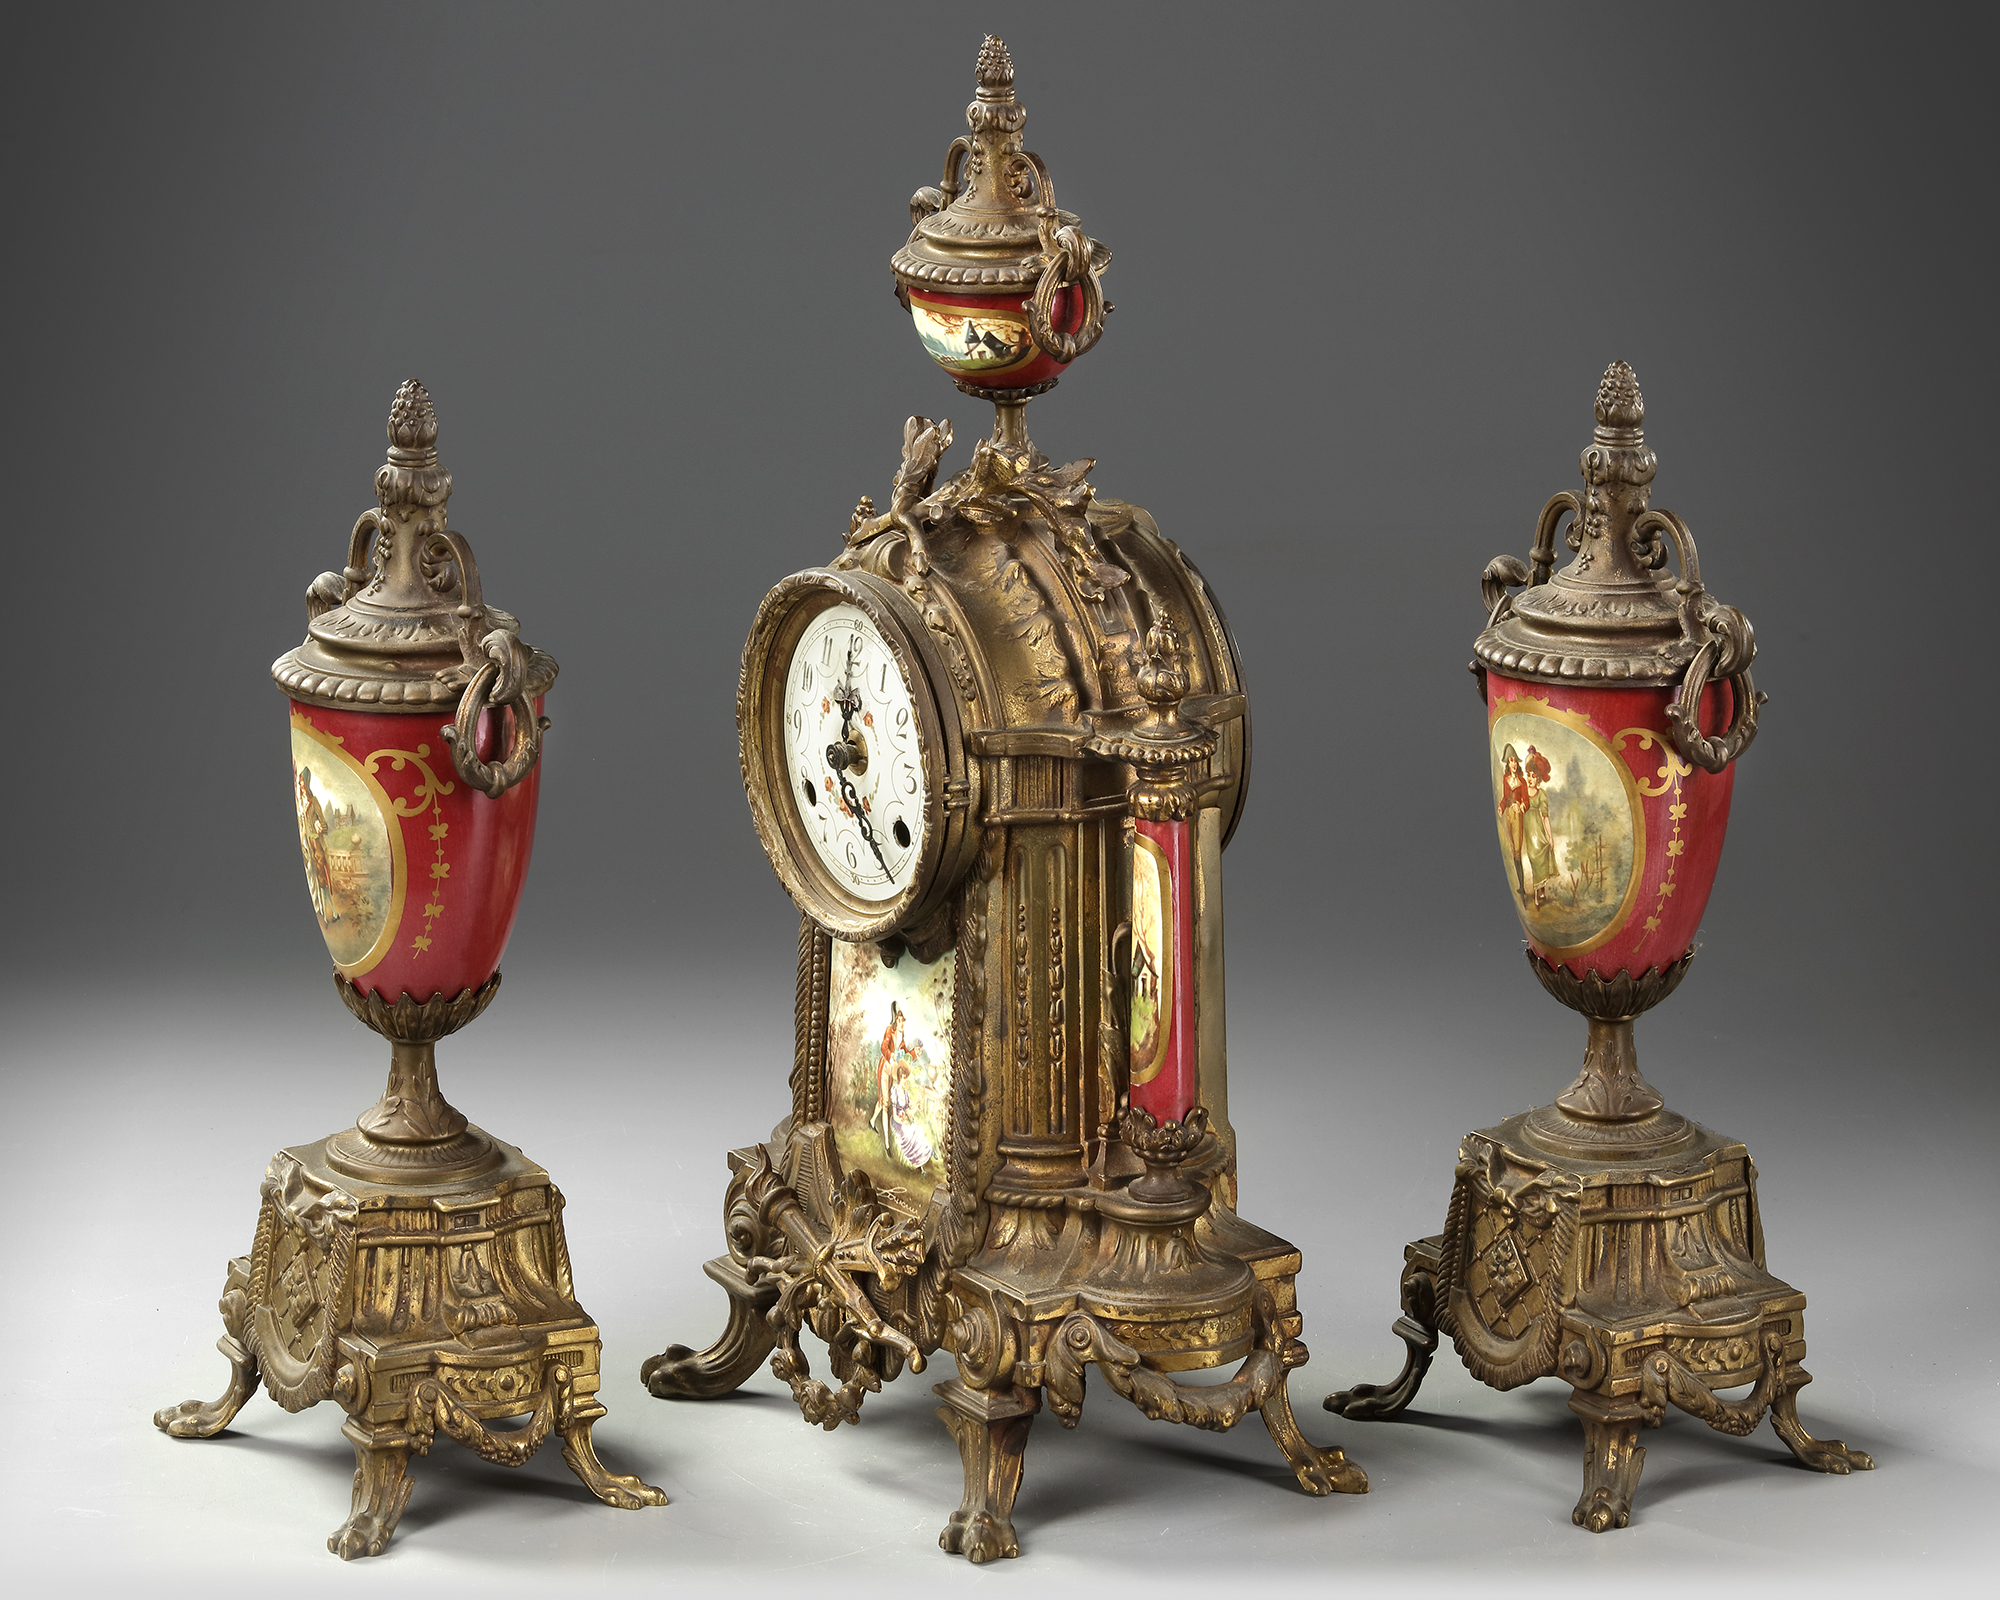 A SPELTER AND RED PORCELAIN CLOCK SET, 19TH CENTURY - Image 2 of 4